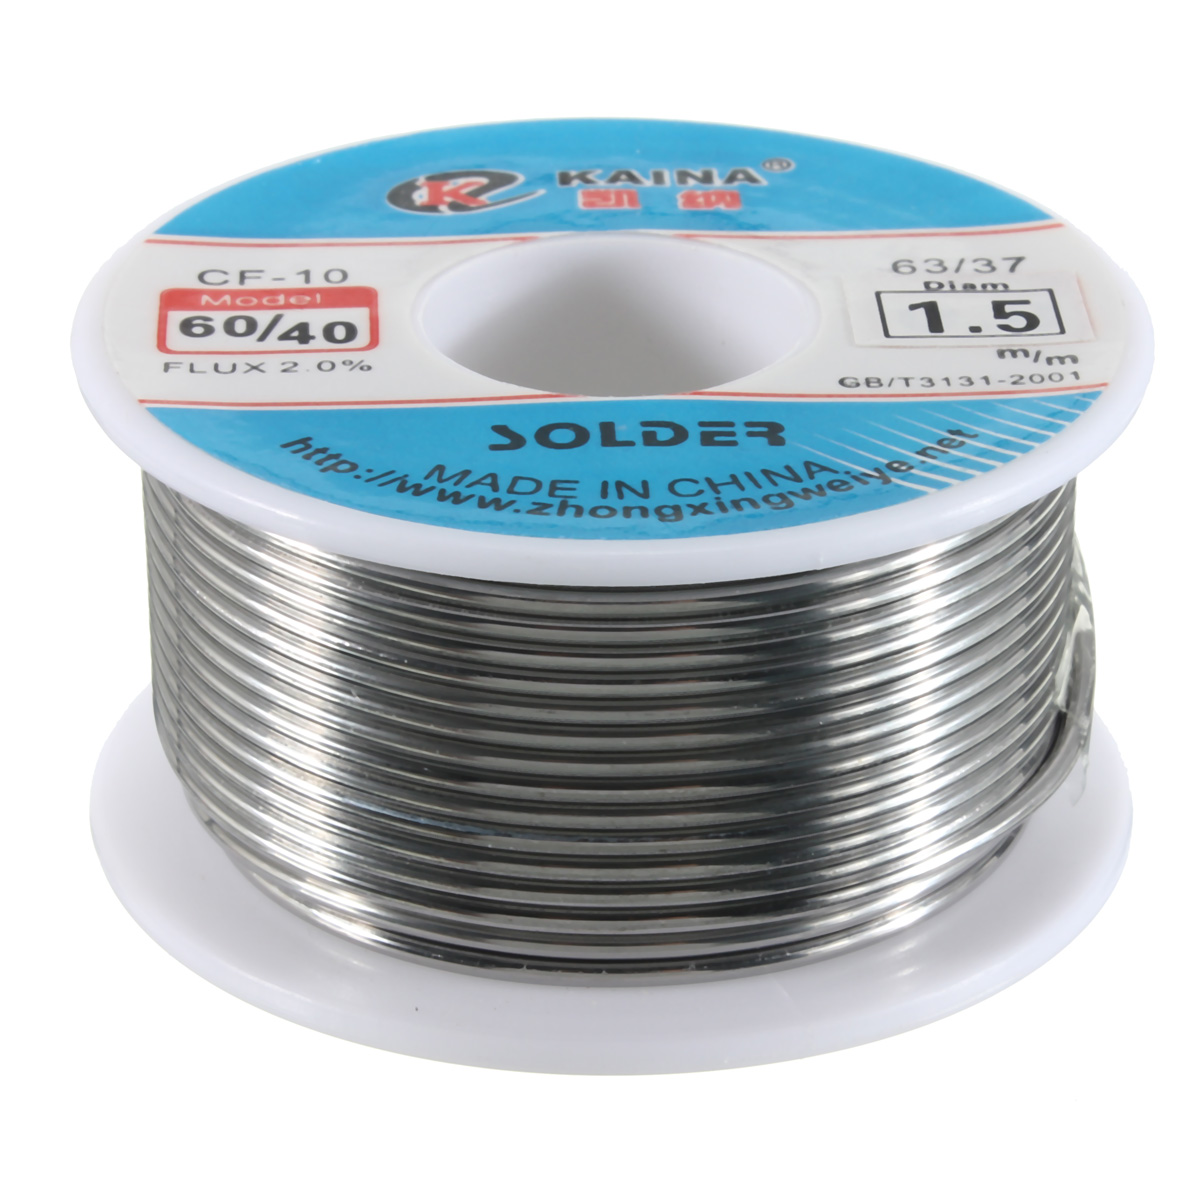 100g 1.5mm <font><b>60</b></font>/<font><b>40</b></font> Tin lead <font><b>Solder</b></font> Wire Rosin Core Soldering 2% Flux Reel Tube US image